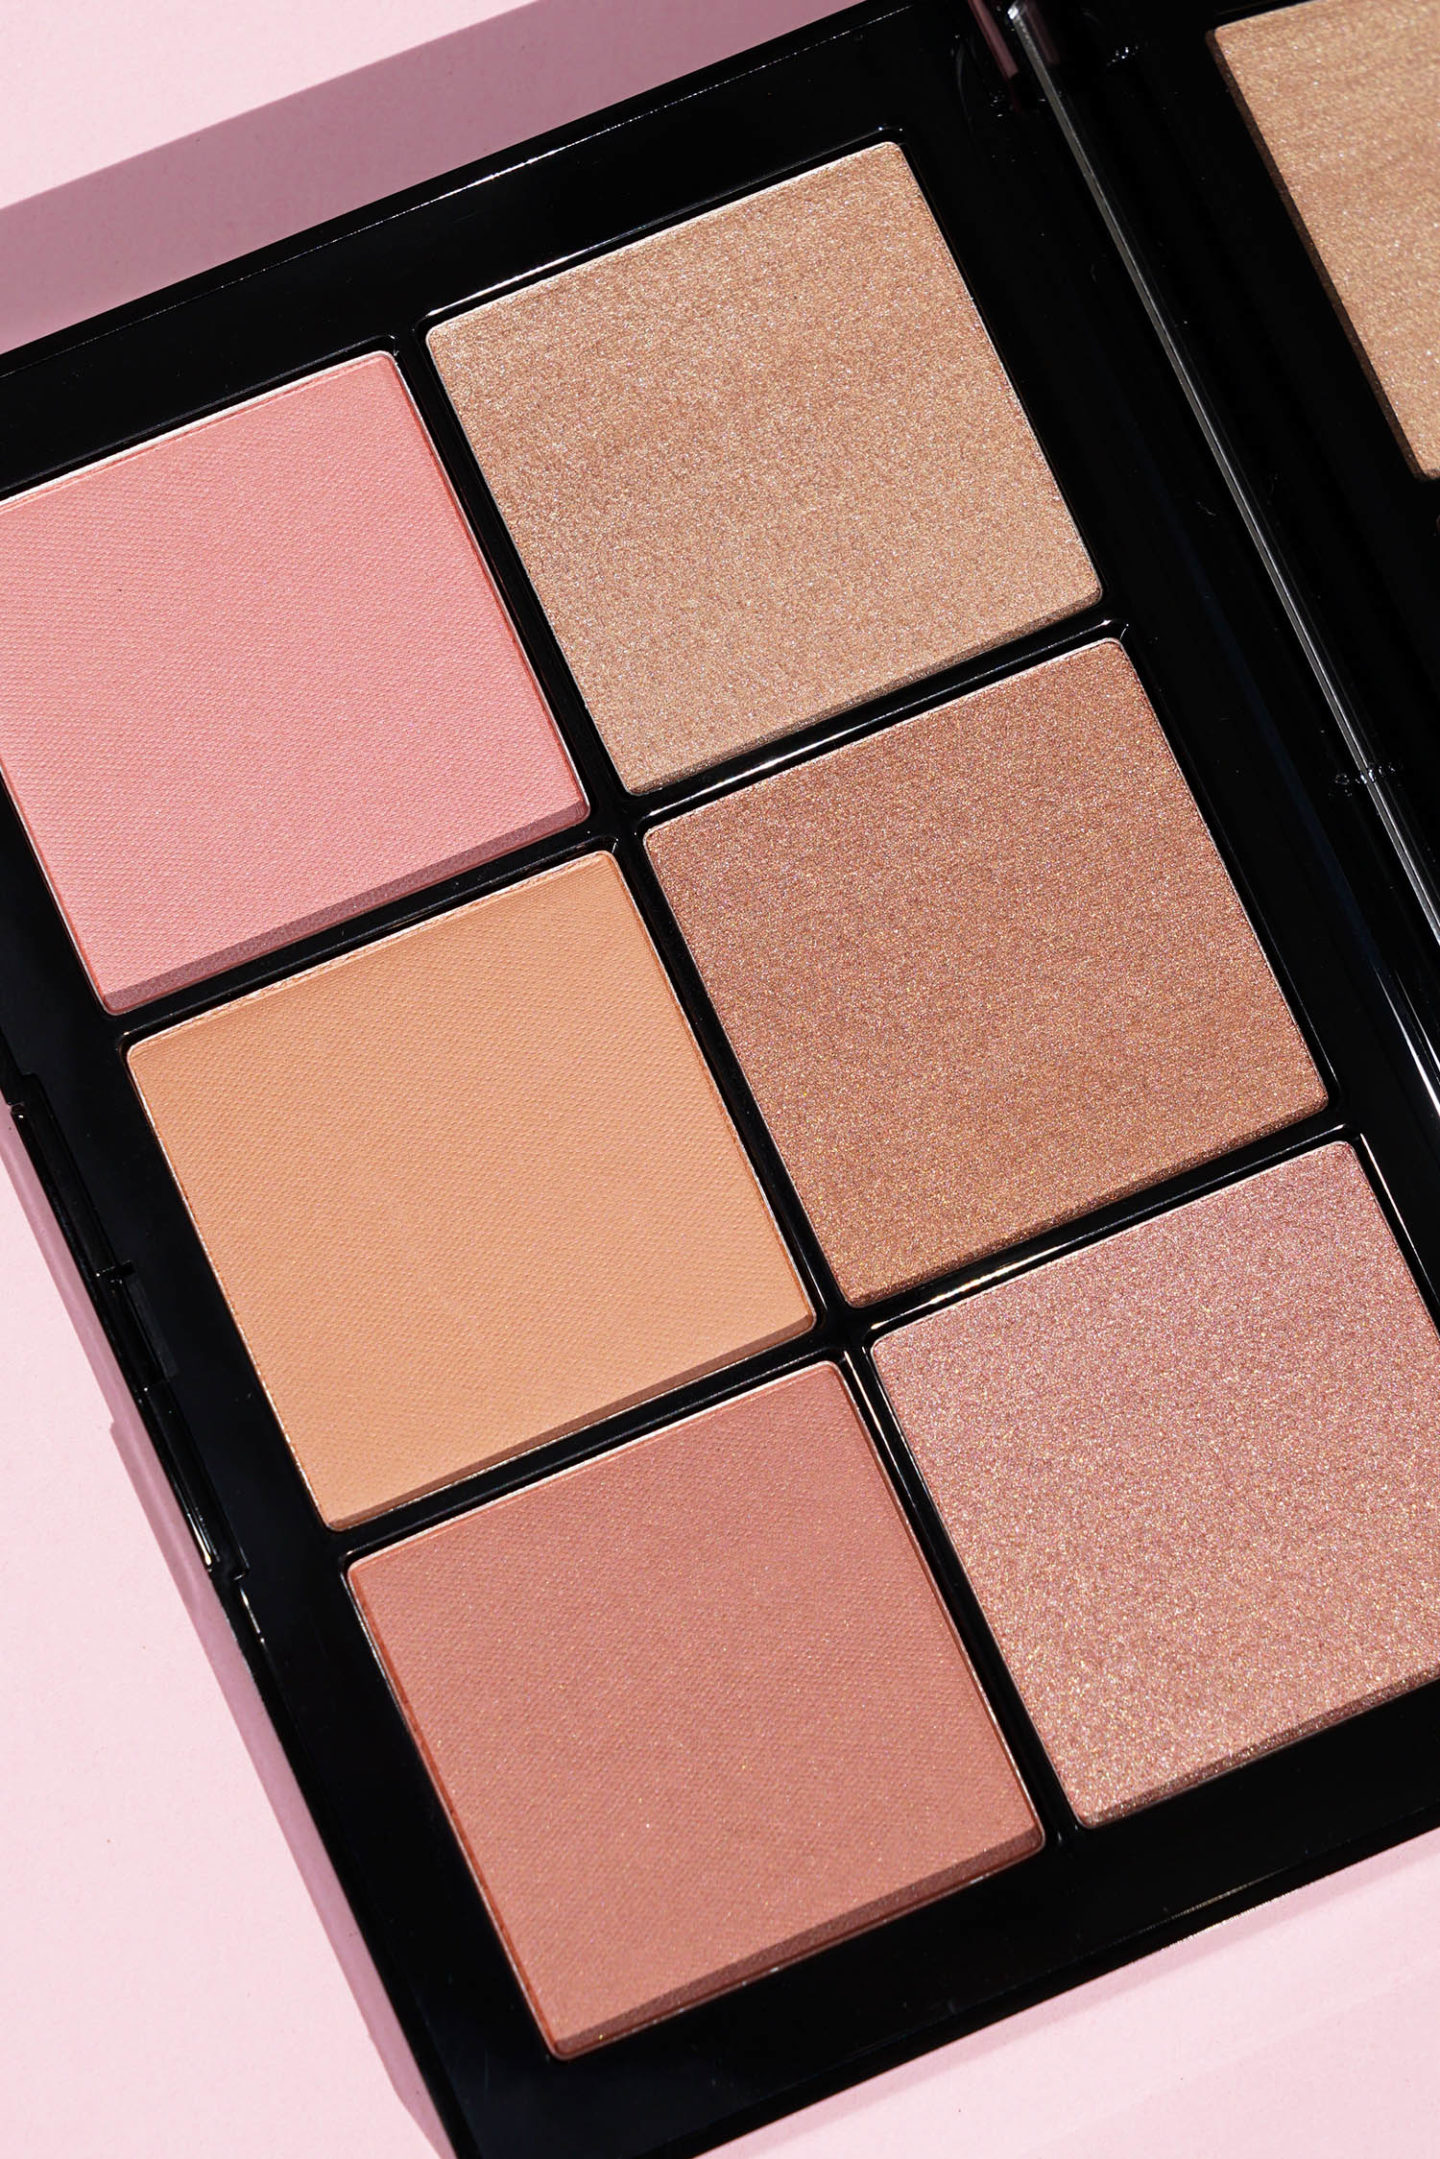 NARS Overlust Cheek Palette Review via The Beauty Look Book